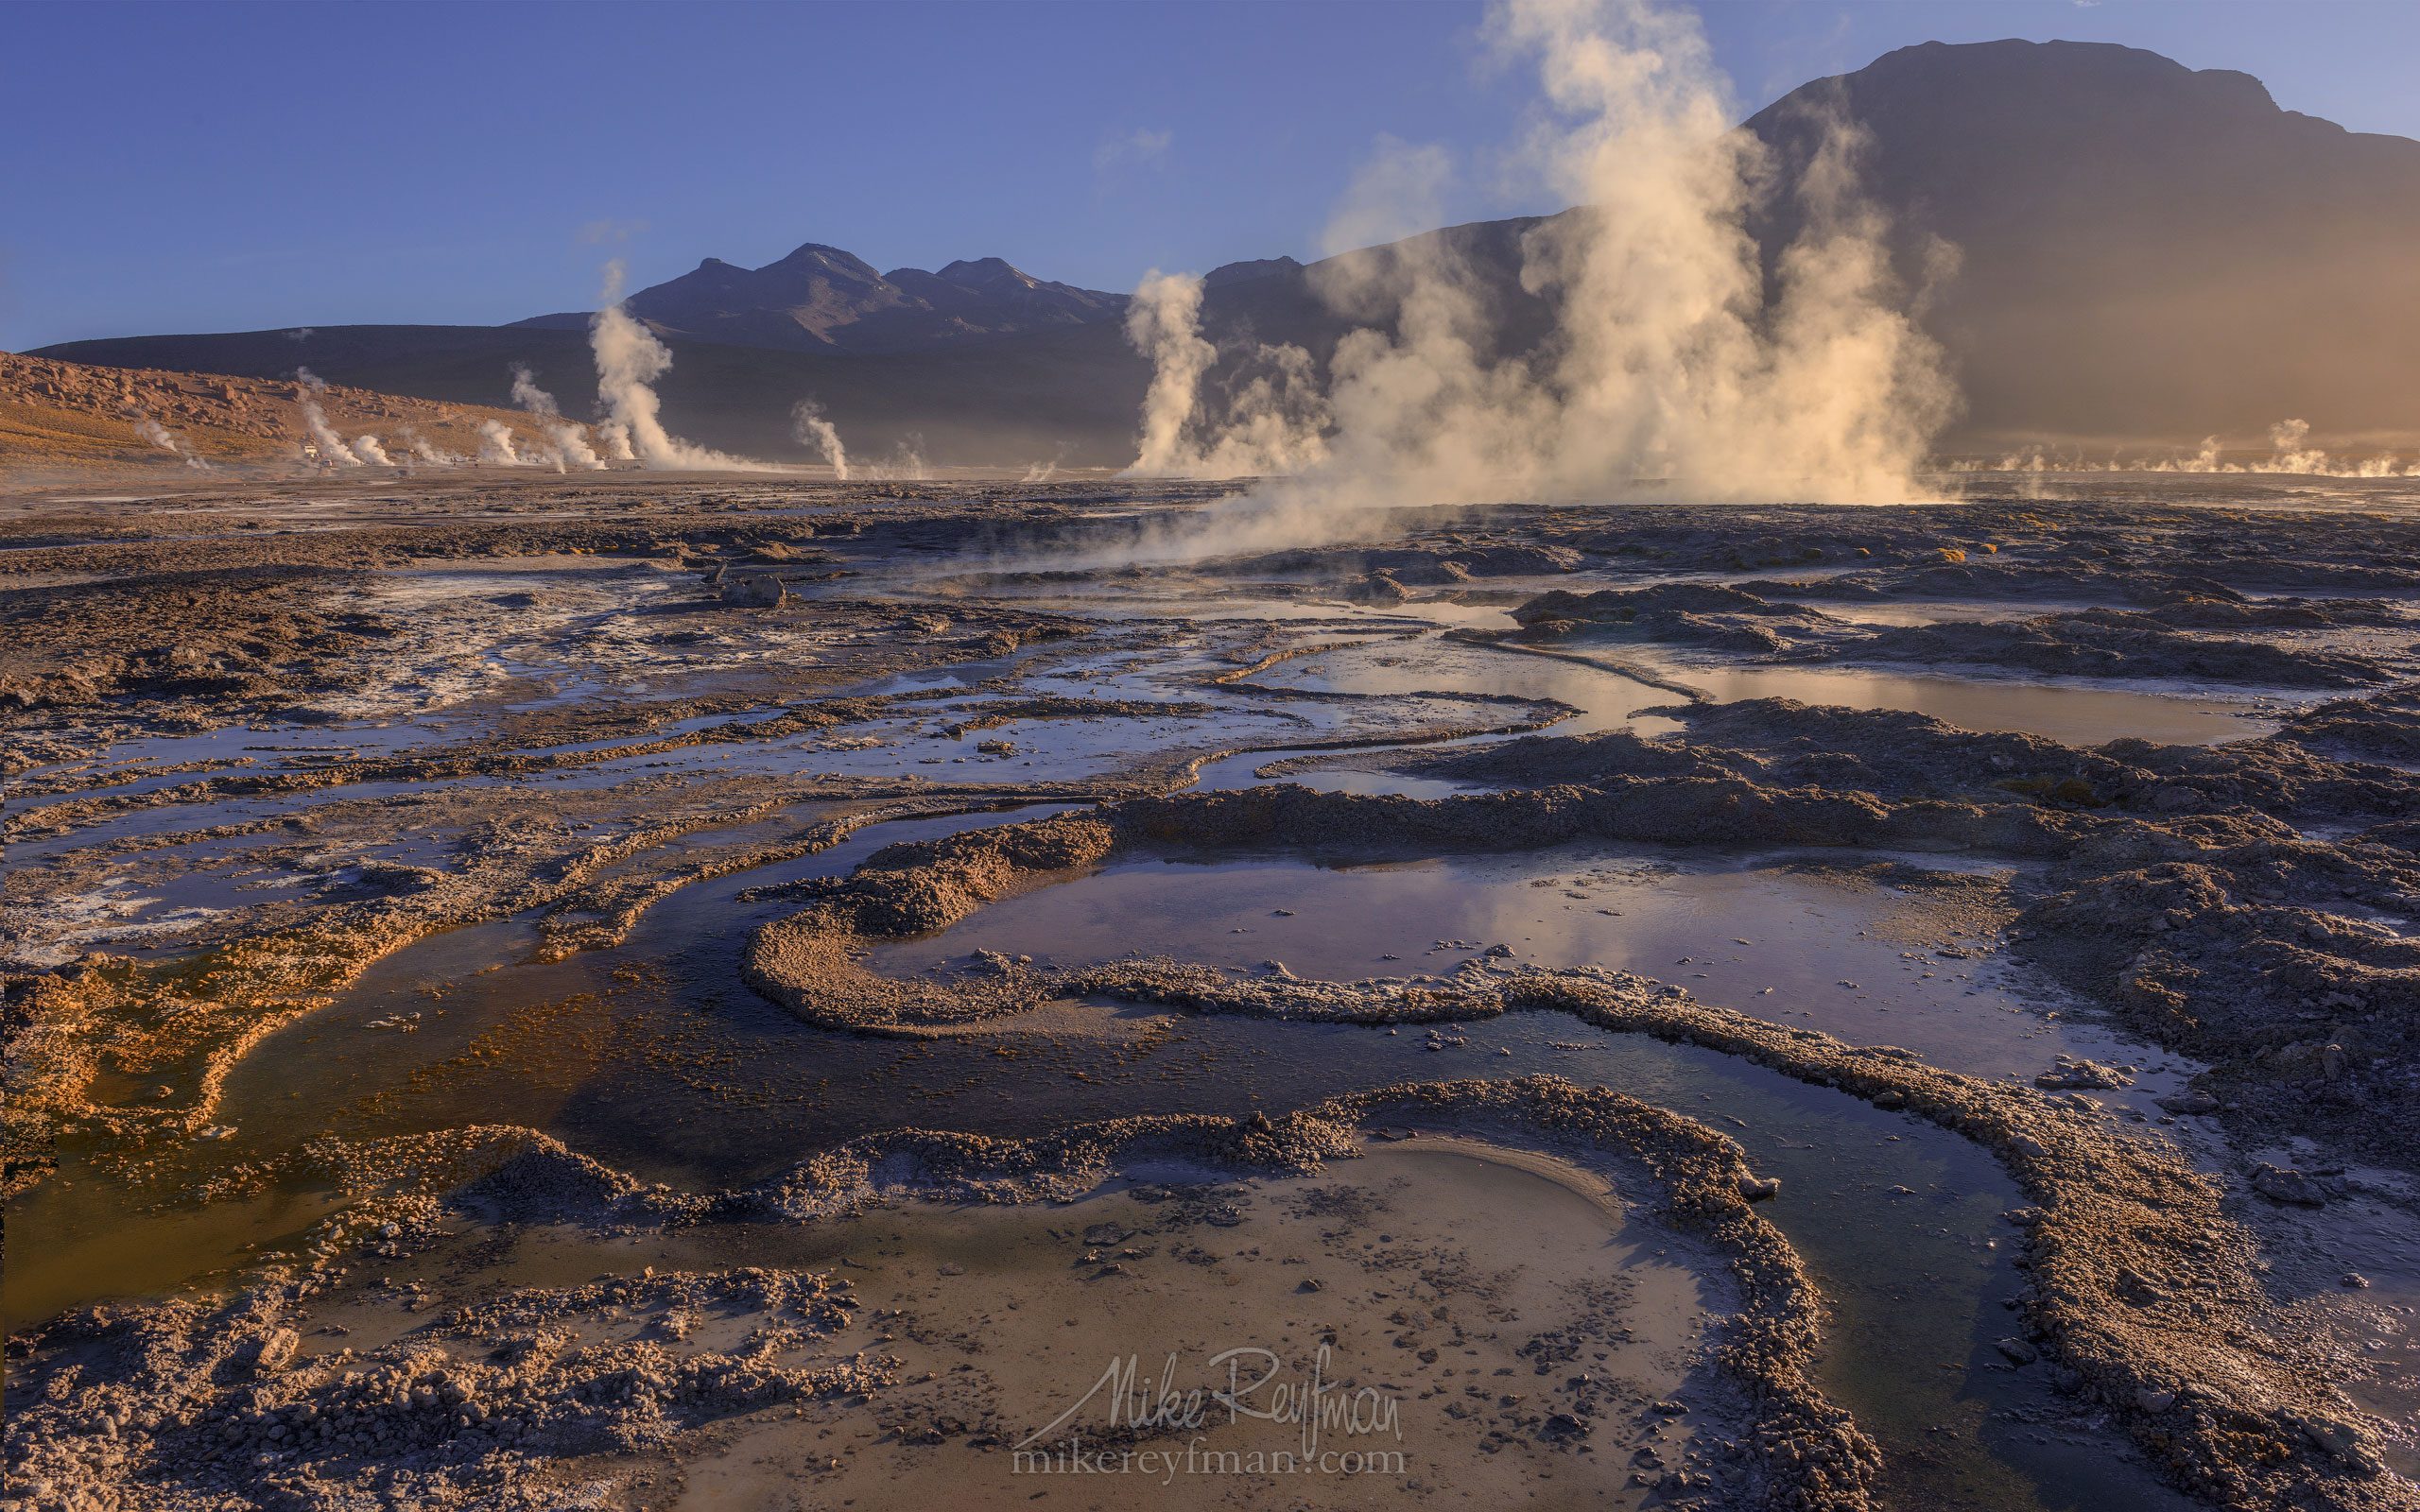 Geyser del Tatio. Atacama's Geothermal Field, Antofagasta Region, Chile AA1-D1D8785t - Atacama and Altiplano. The Driest Desert and The High Plain - Mike Reyfman Photography